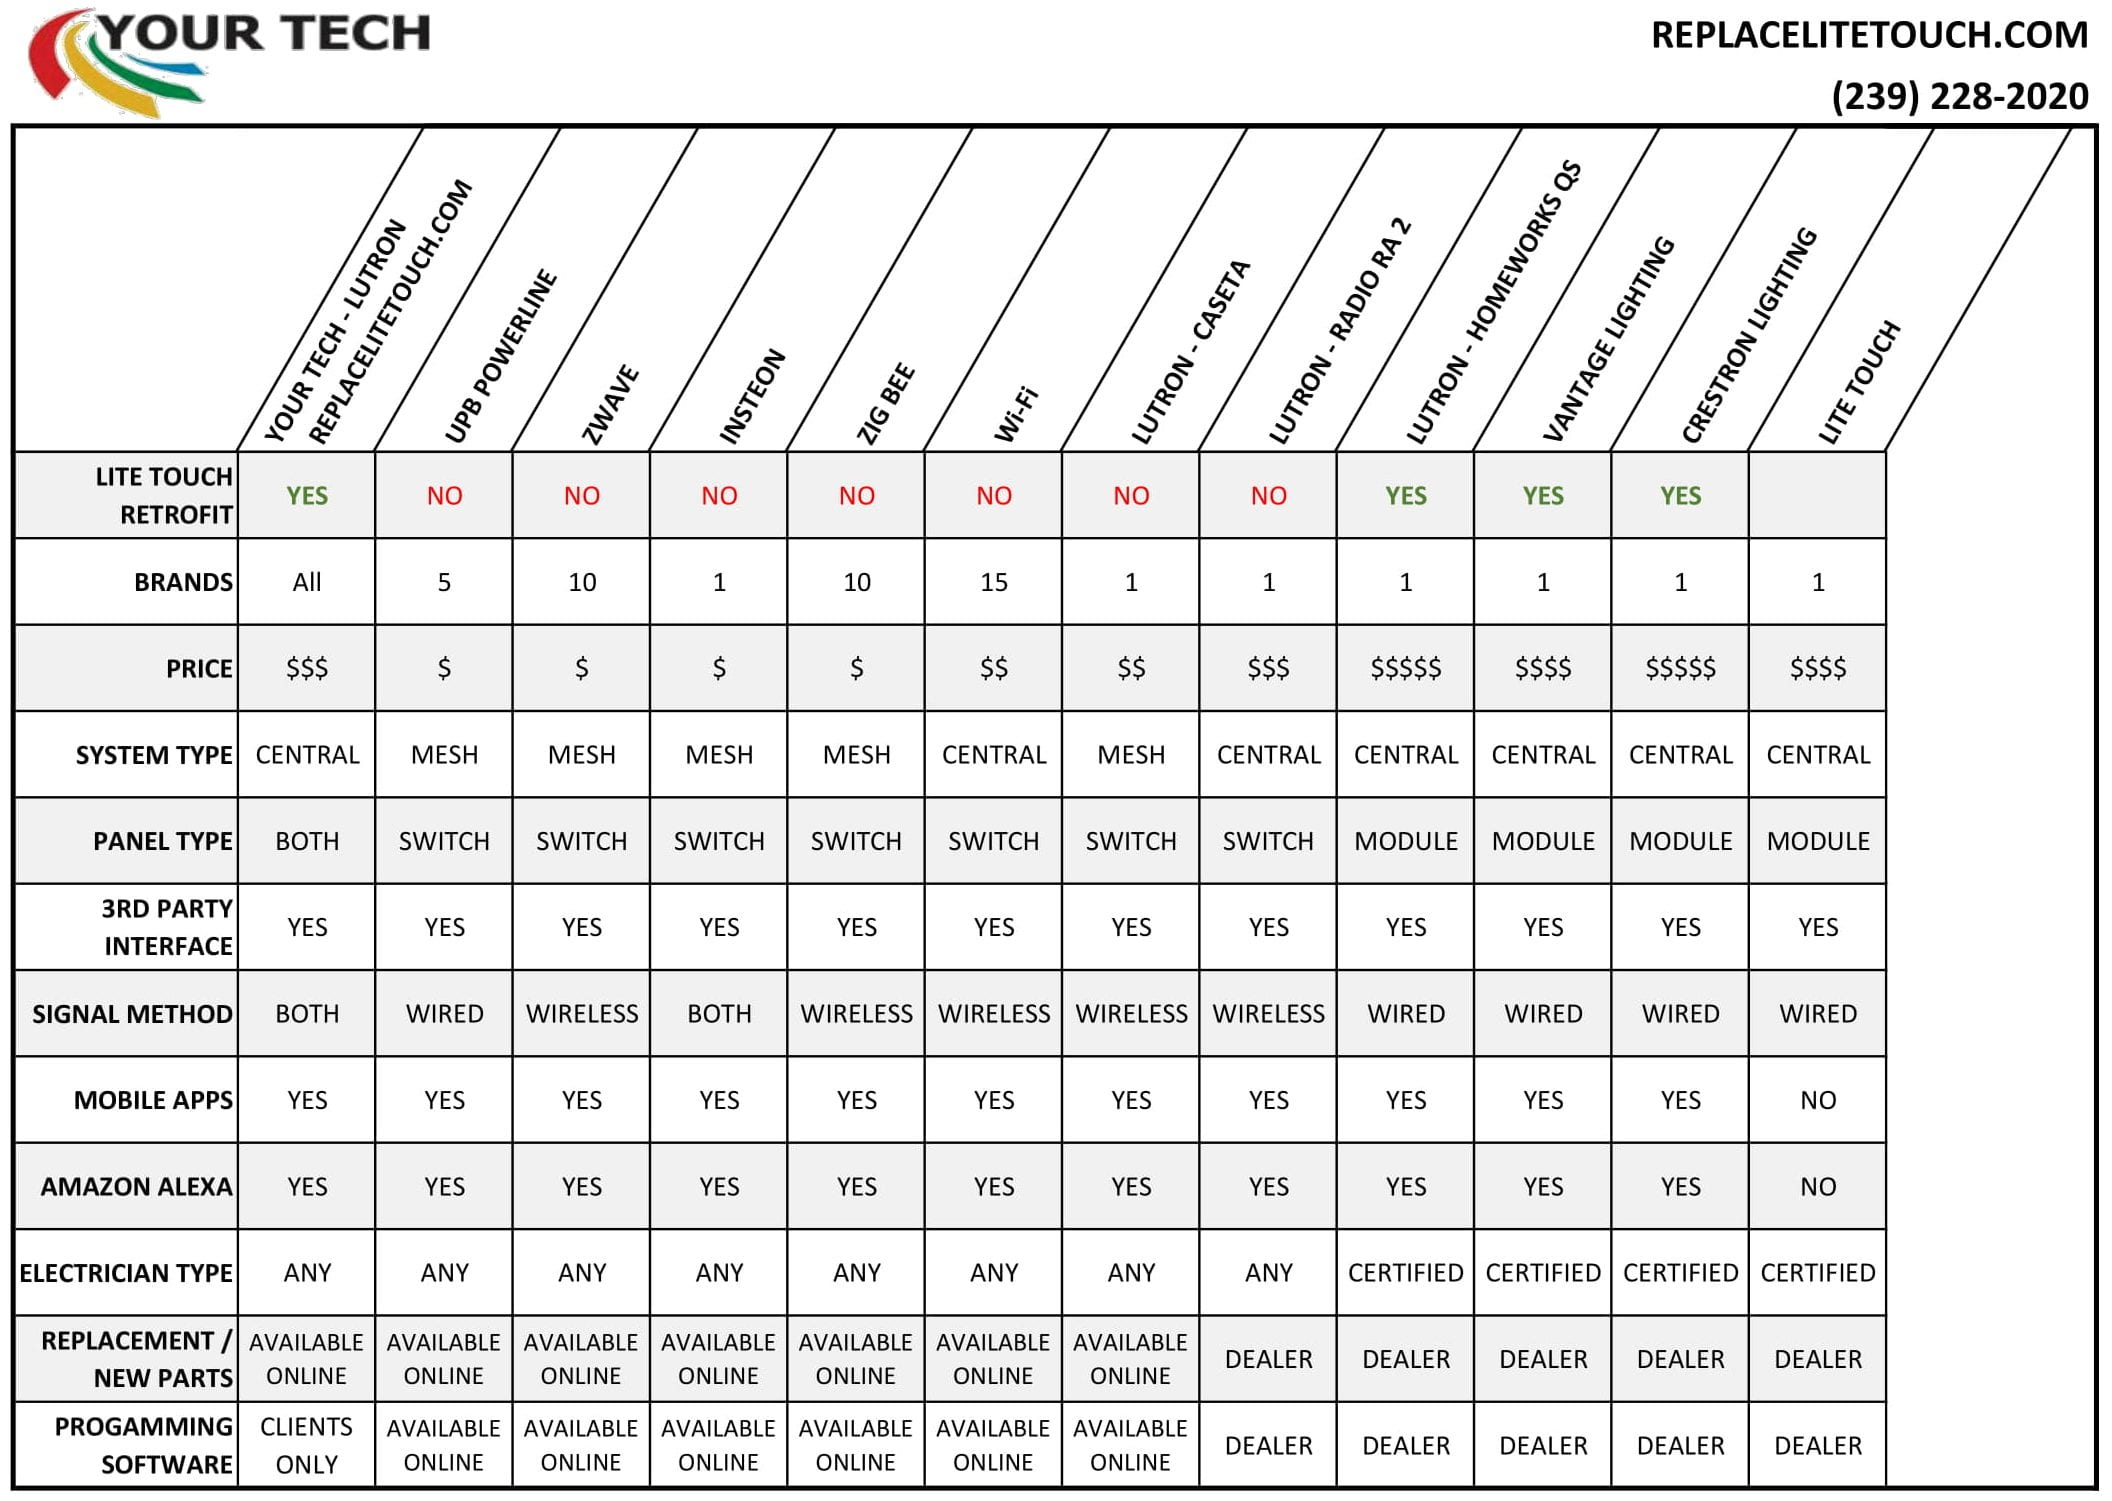 Compare Litetouch Replacement options with other lighting systems